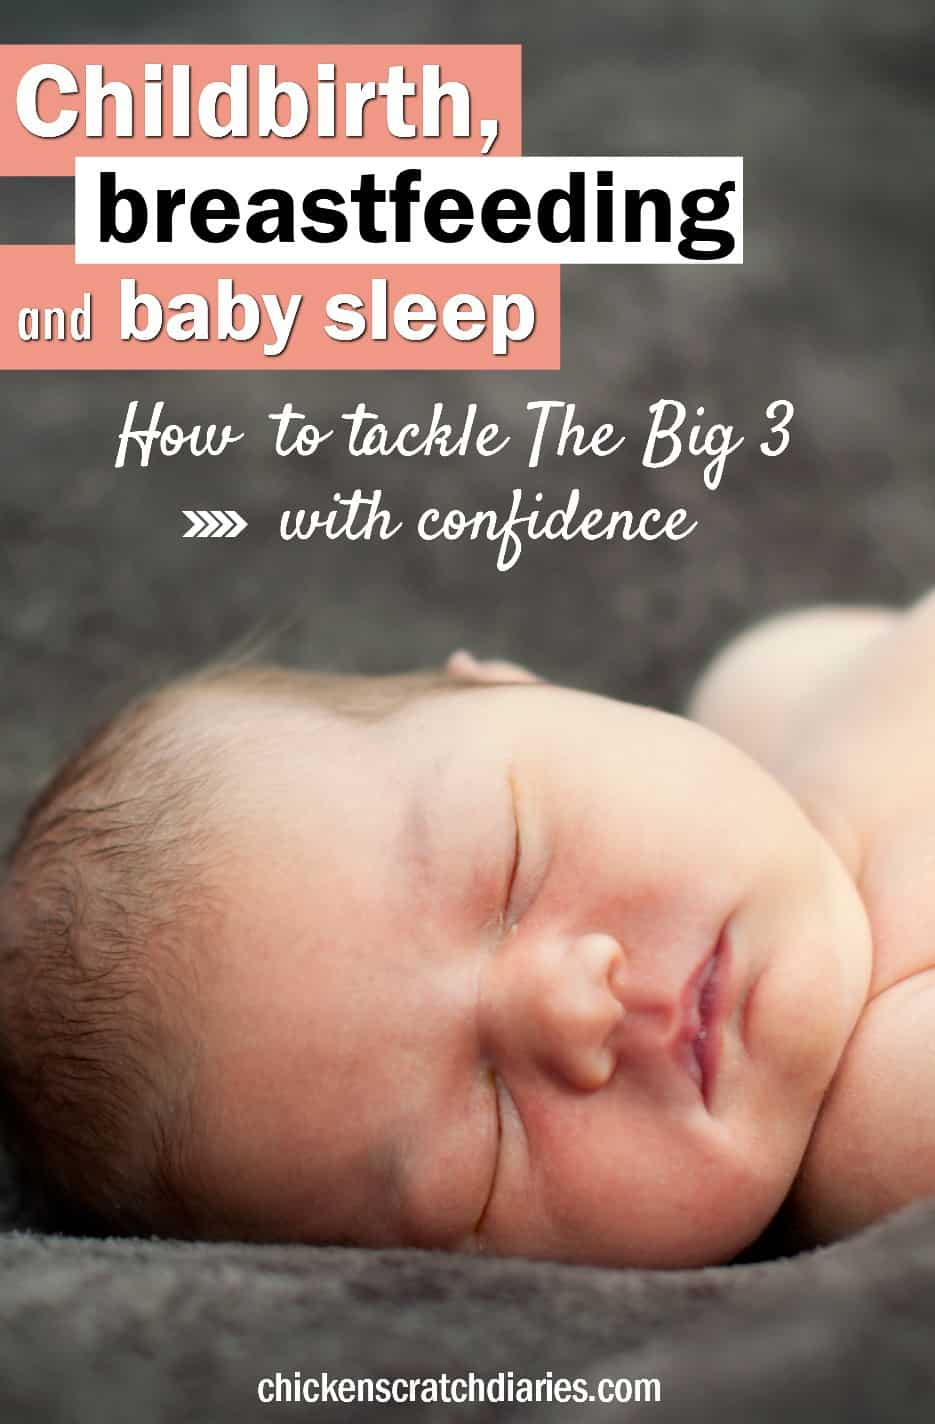 Resources for new and expecting moms - genius! #Newborns #Prenatal #Breastfeeding #Baby #Sleep